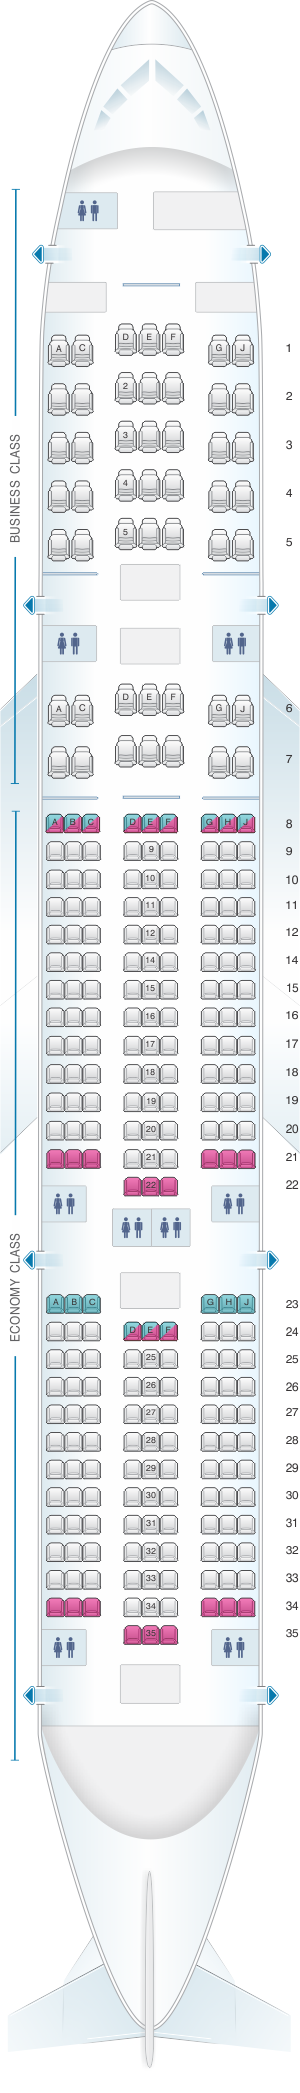 Seat map for Aeromexico Boeing B777 200ER